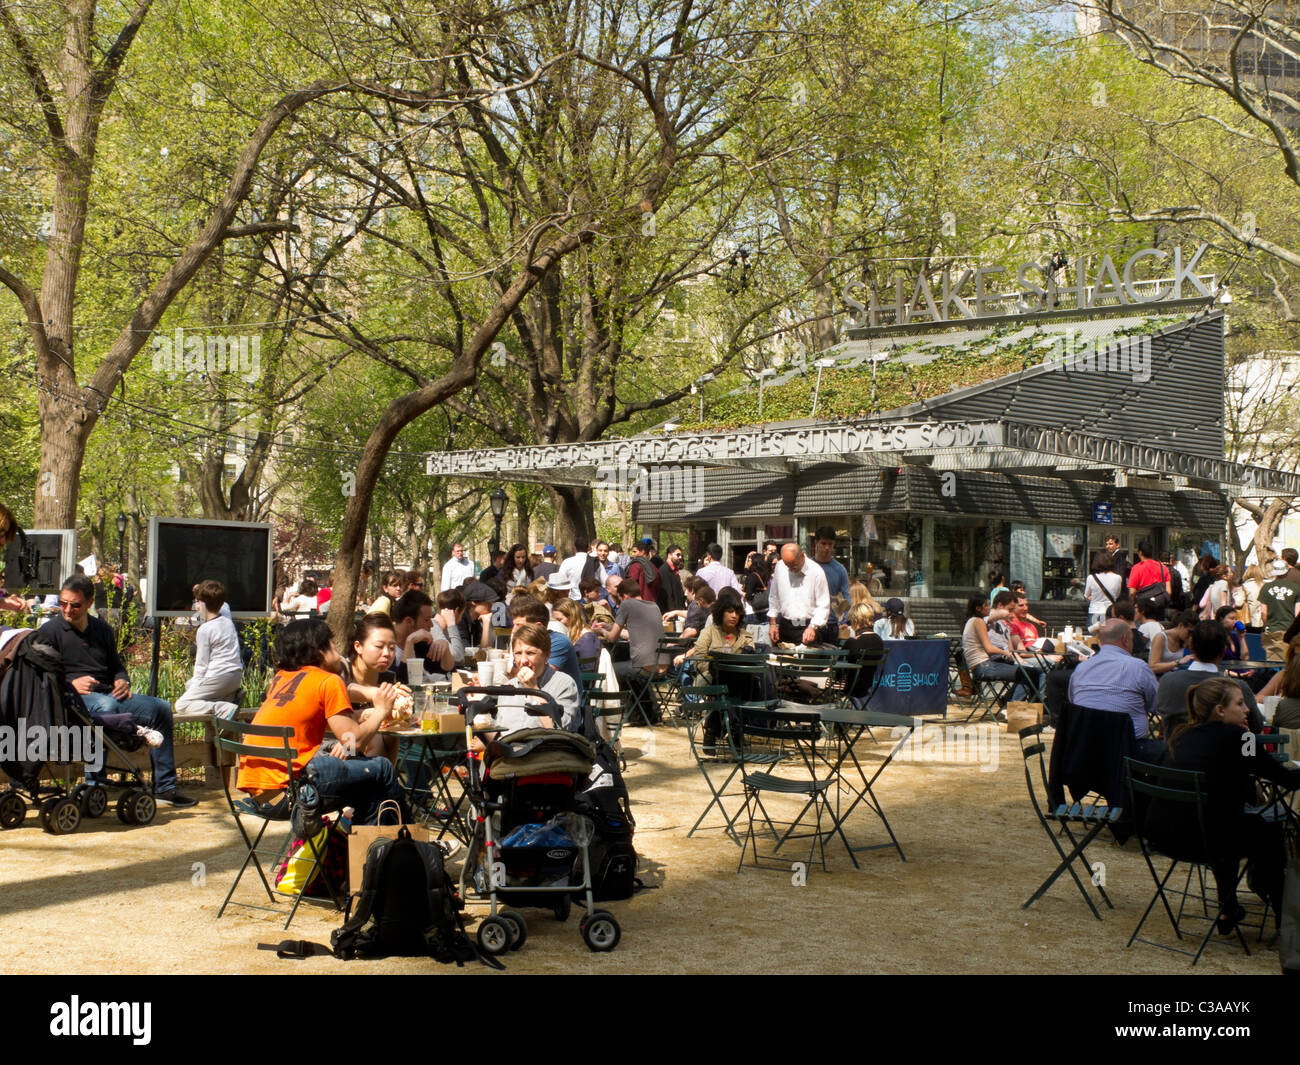 The Shake Shack, Madison Square Park, NYC (Series 1 of 2